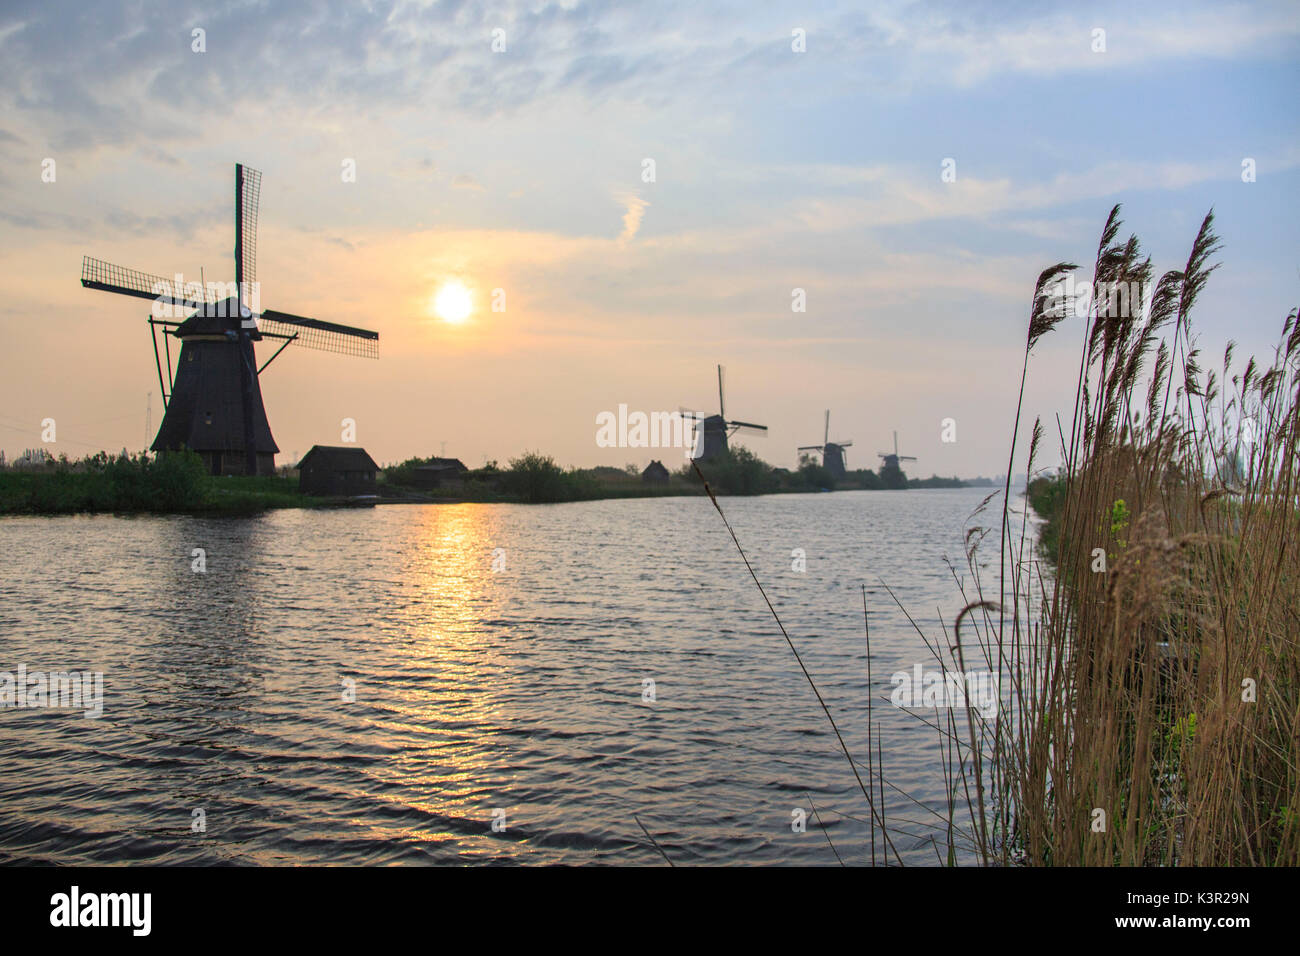 Morning sun just risen shines in the canal where windmills are reflected Kinderdijk Rotterdam South Holland Netherlands Europe - Stock Image